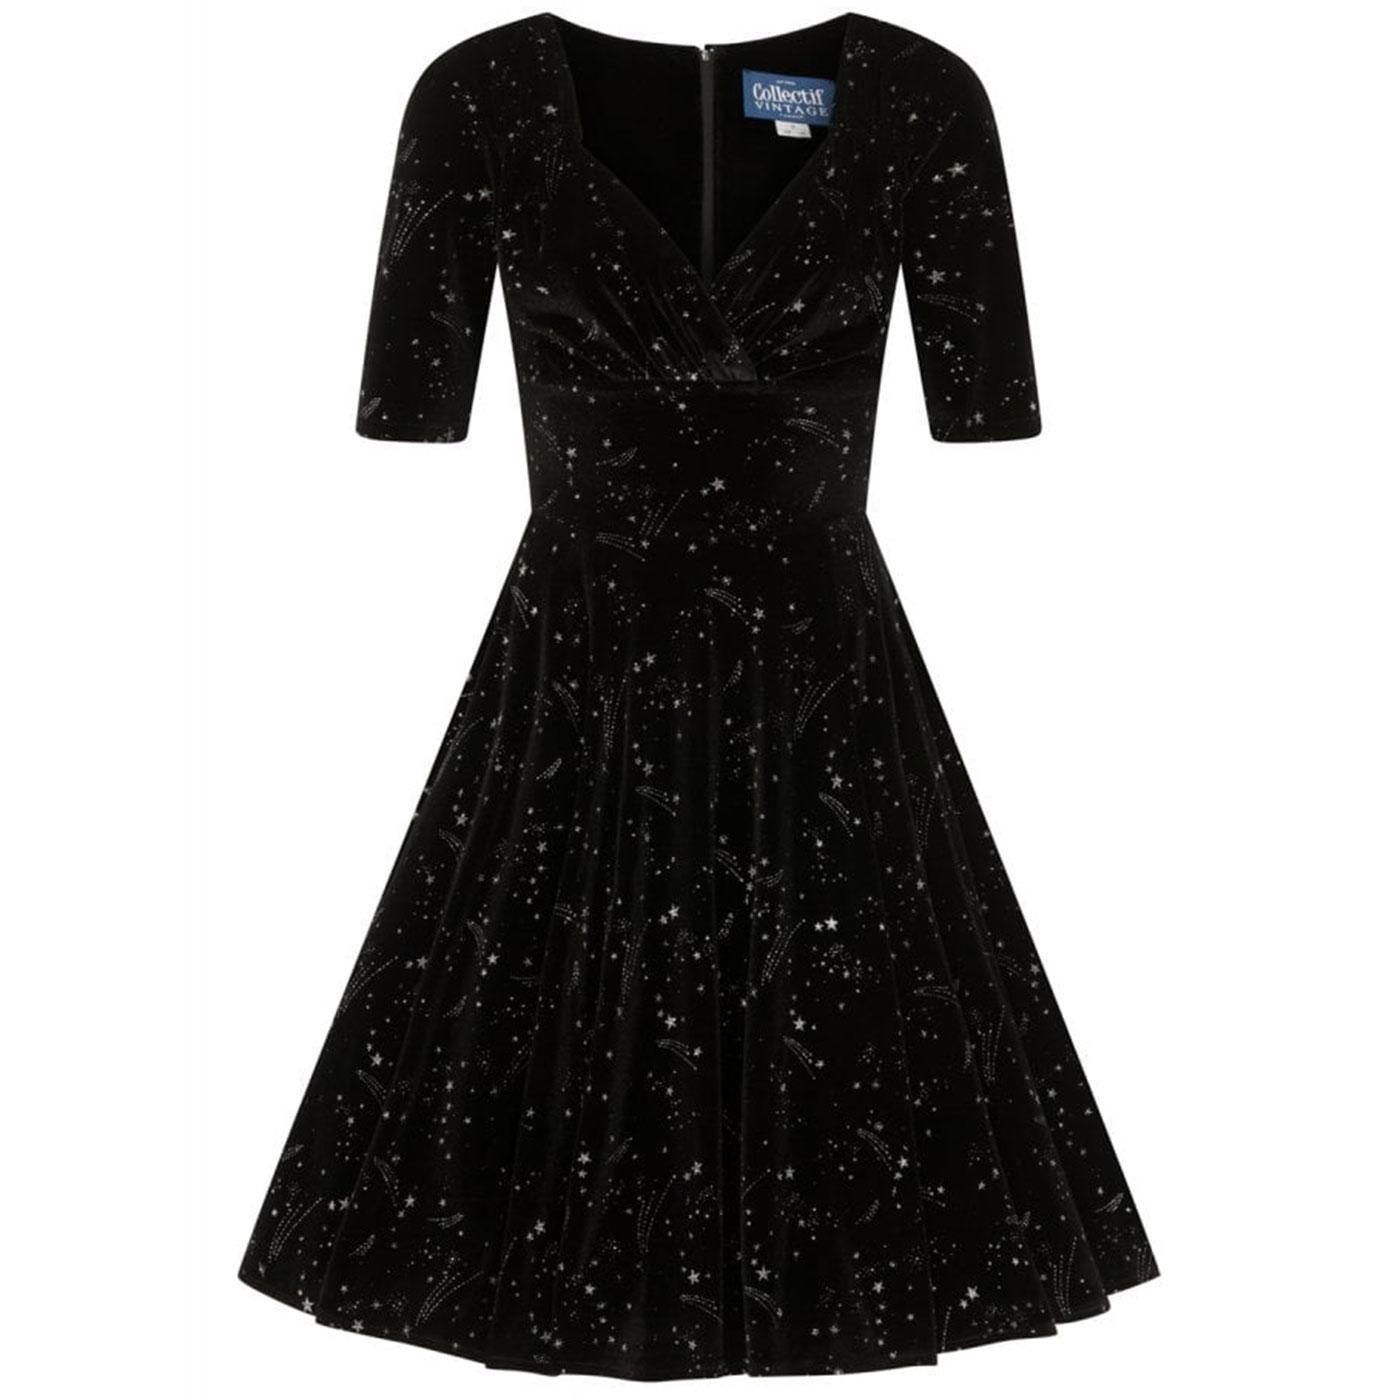 Trixie COLLECTIF 40s Velvet Make A Wish Dress